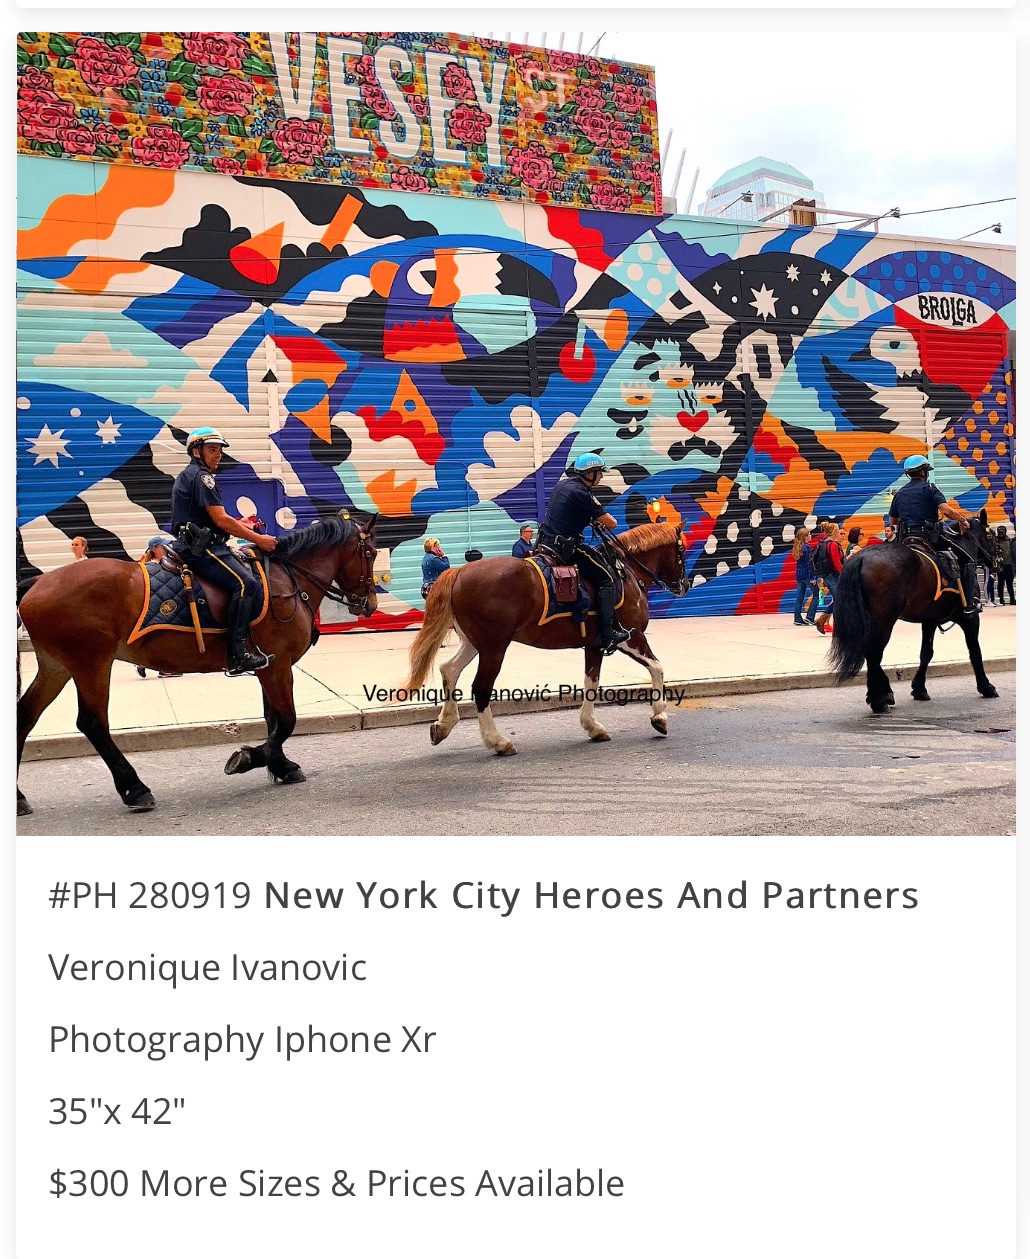 FLAGLER COUNTY ART SHOW/NEW YORK CITY HEROES AND PARTNERS